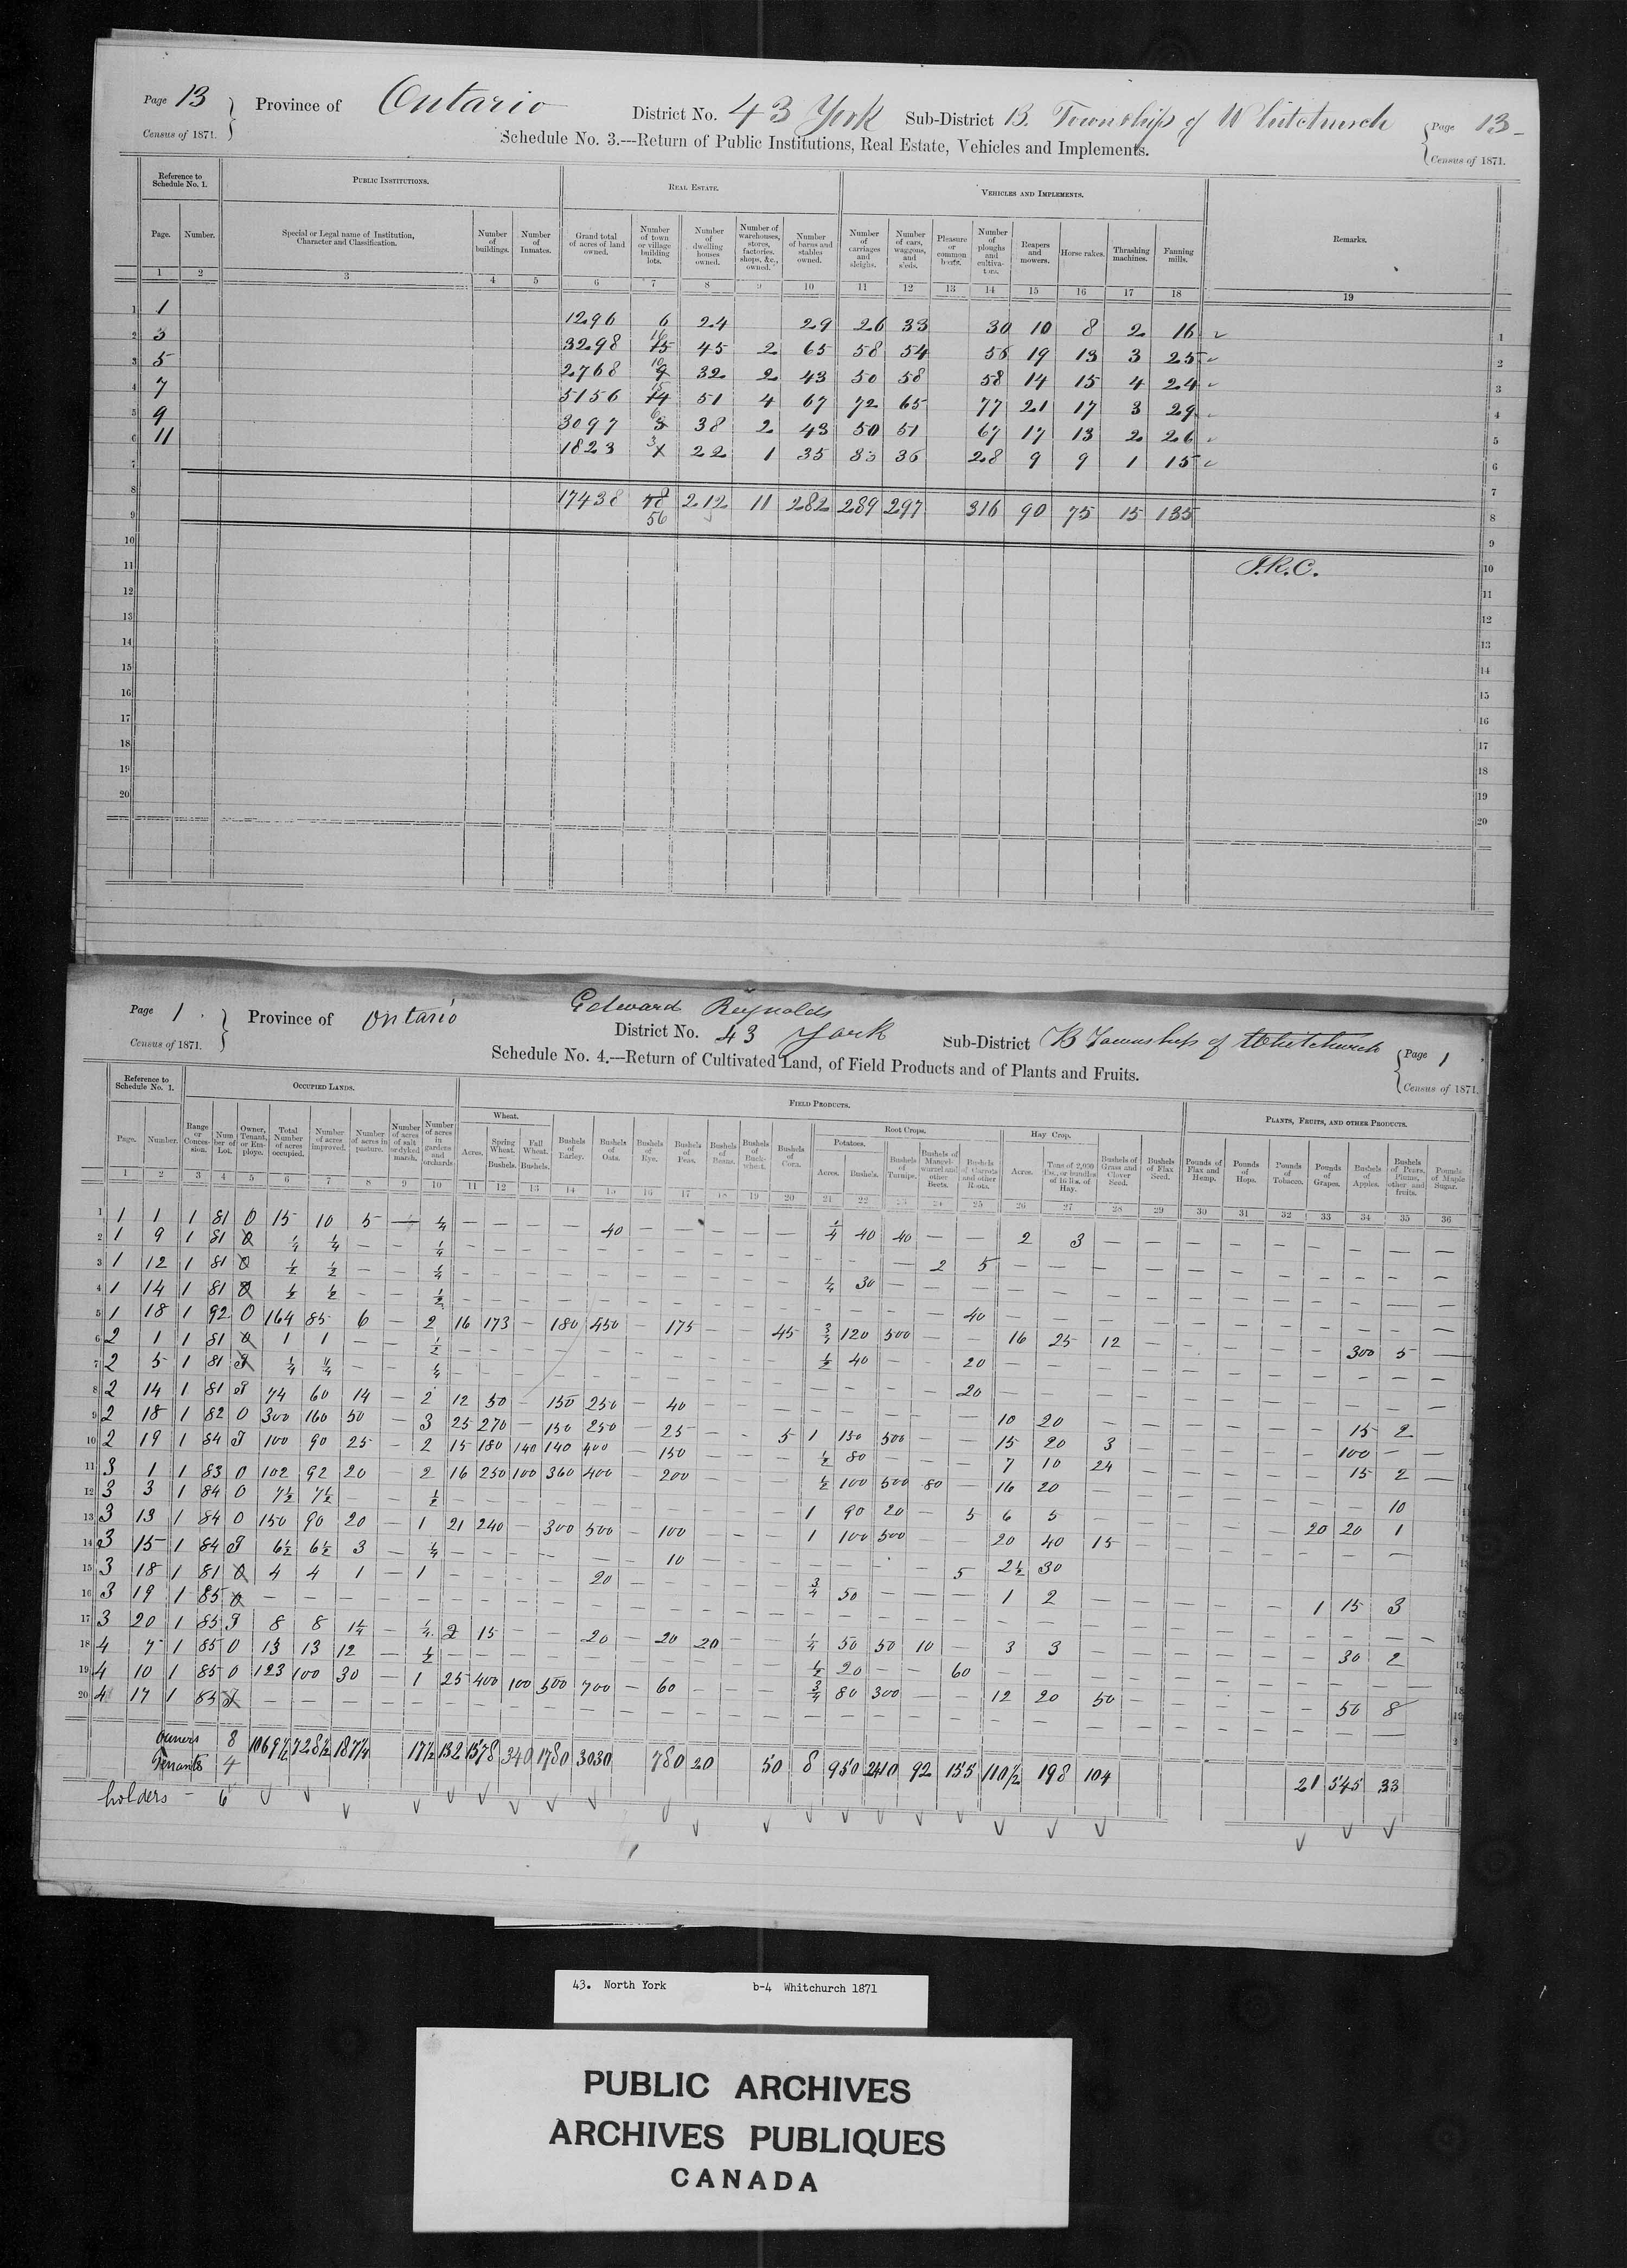 Title: Census of Canada, 1871 - Mikan Number: 142105 - Microform: c-9965